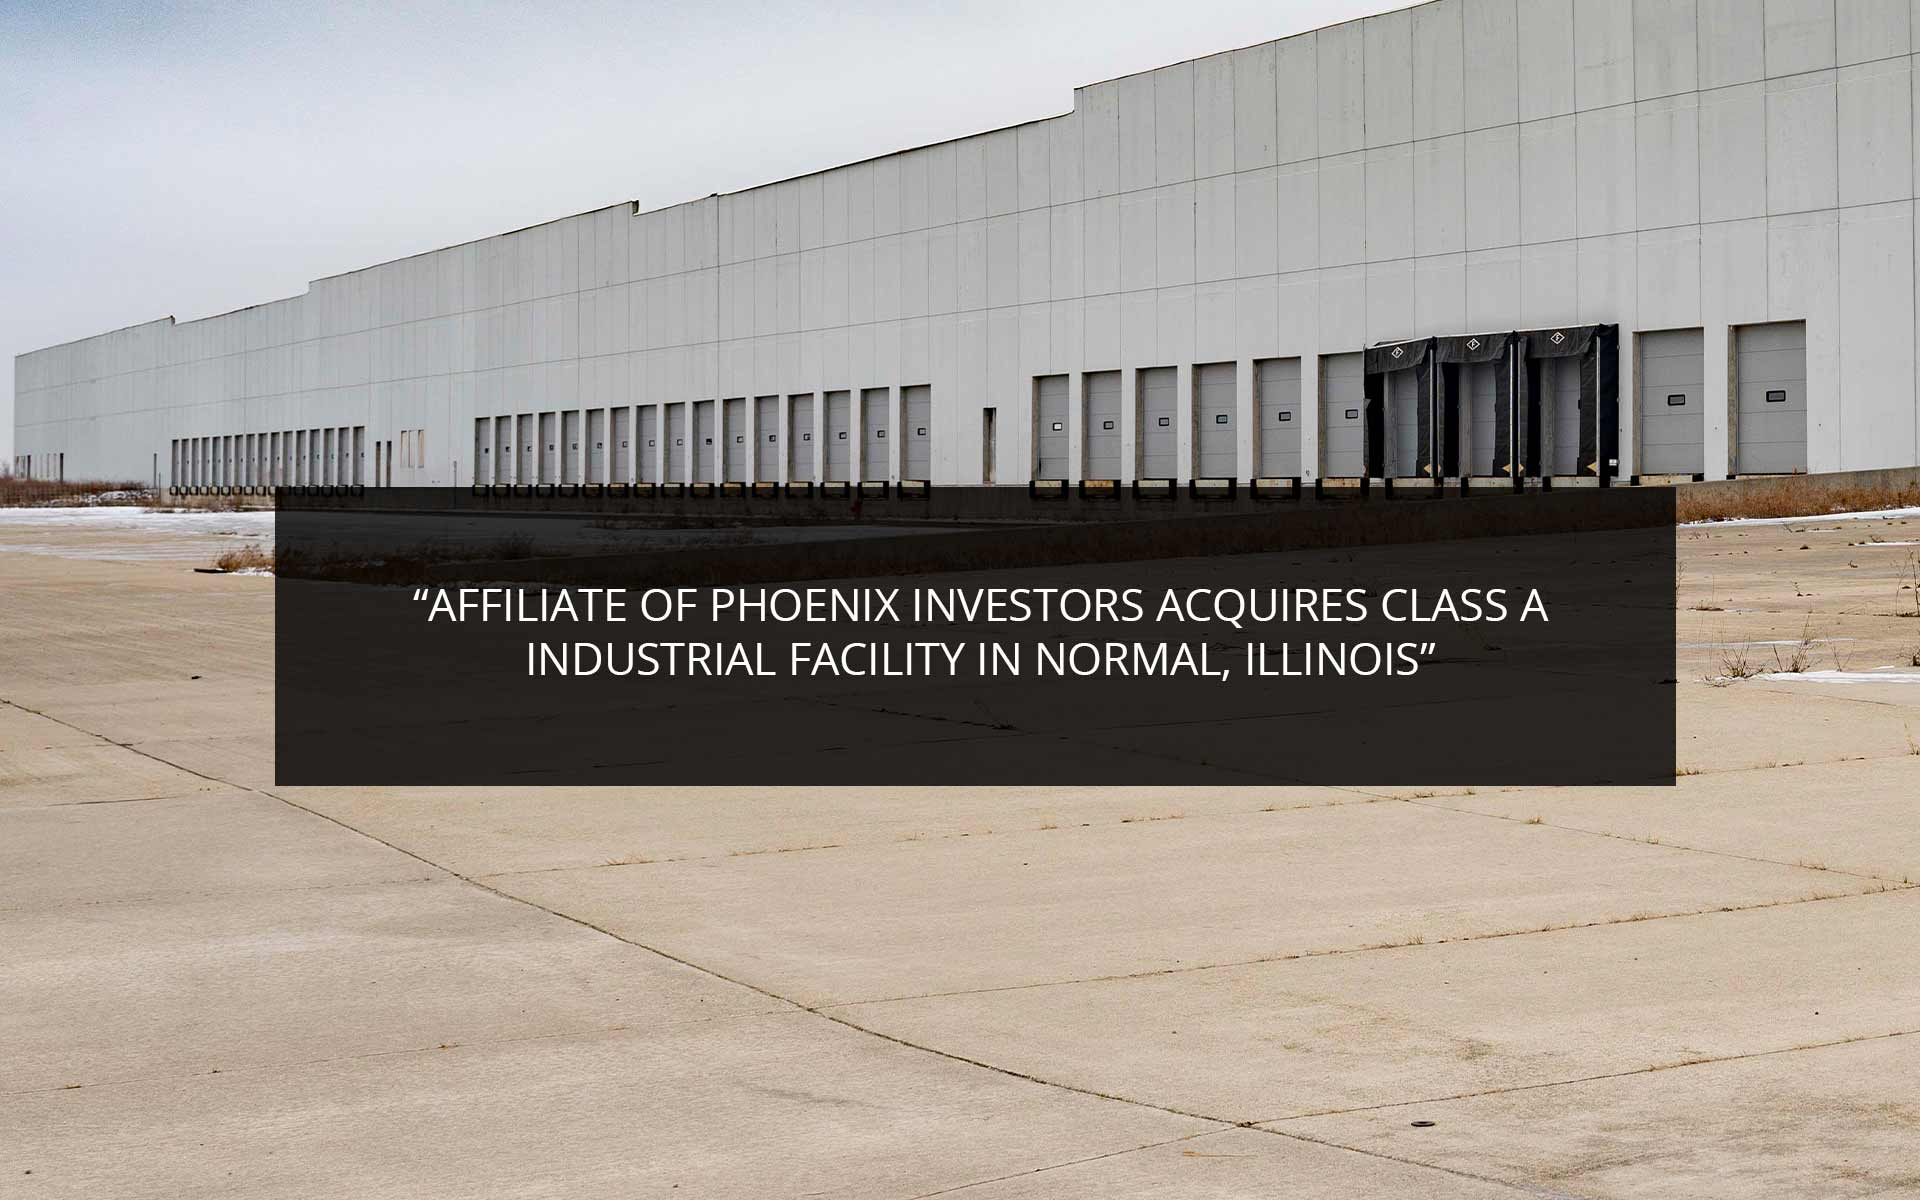 Affiliate Of Phoenix Investors Acquires Class A Industrial Facility In Normal, Illinois